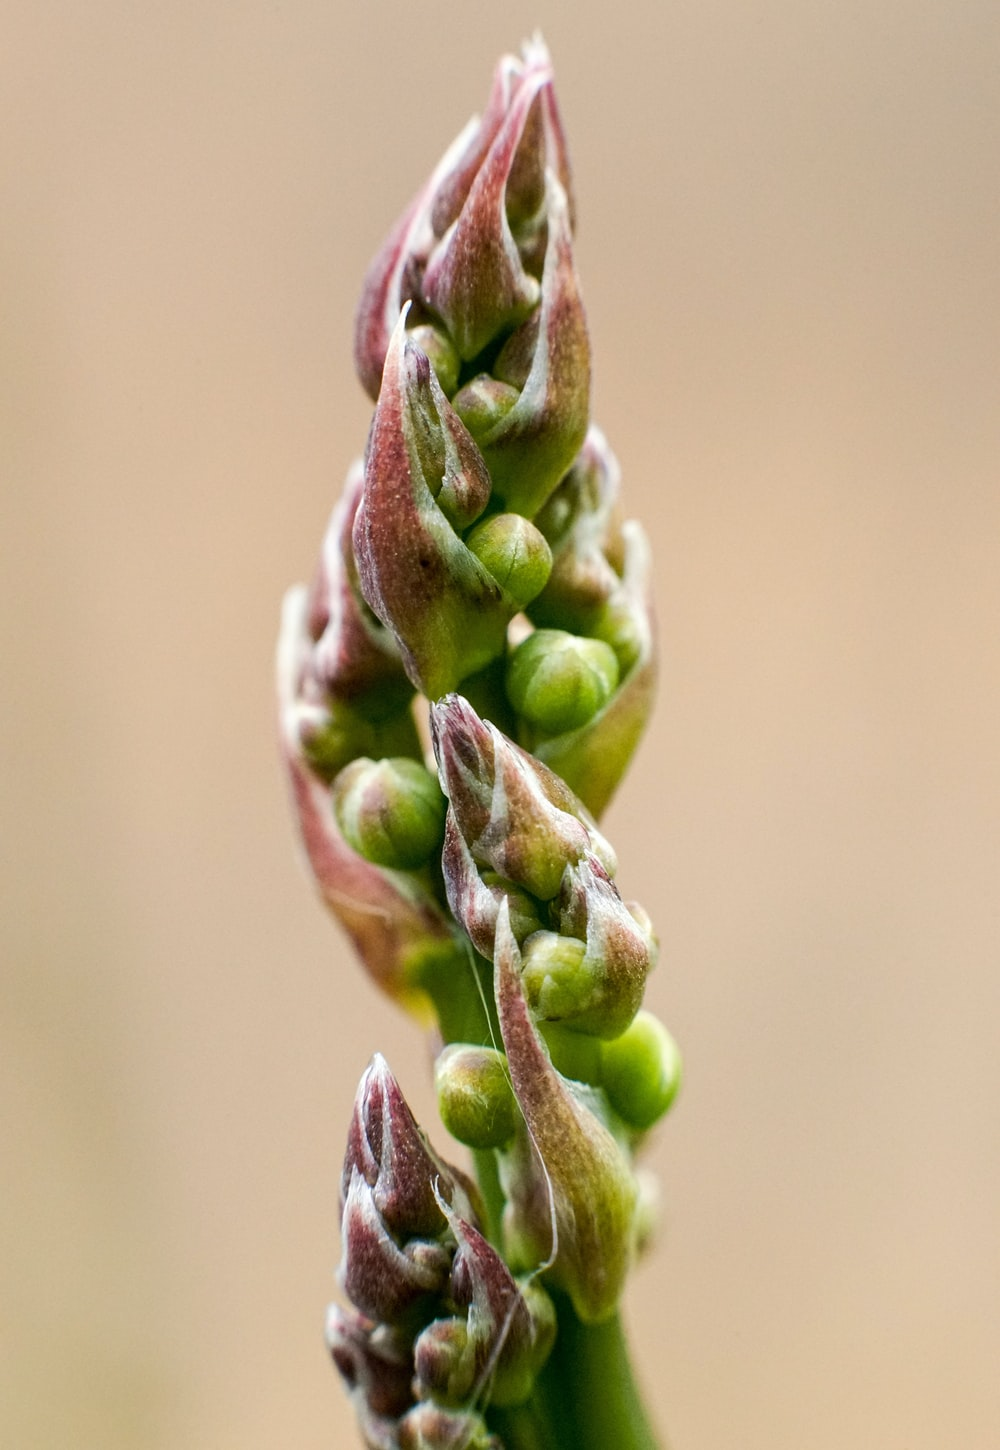 green plant stem in close up photography